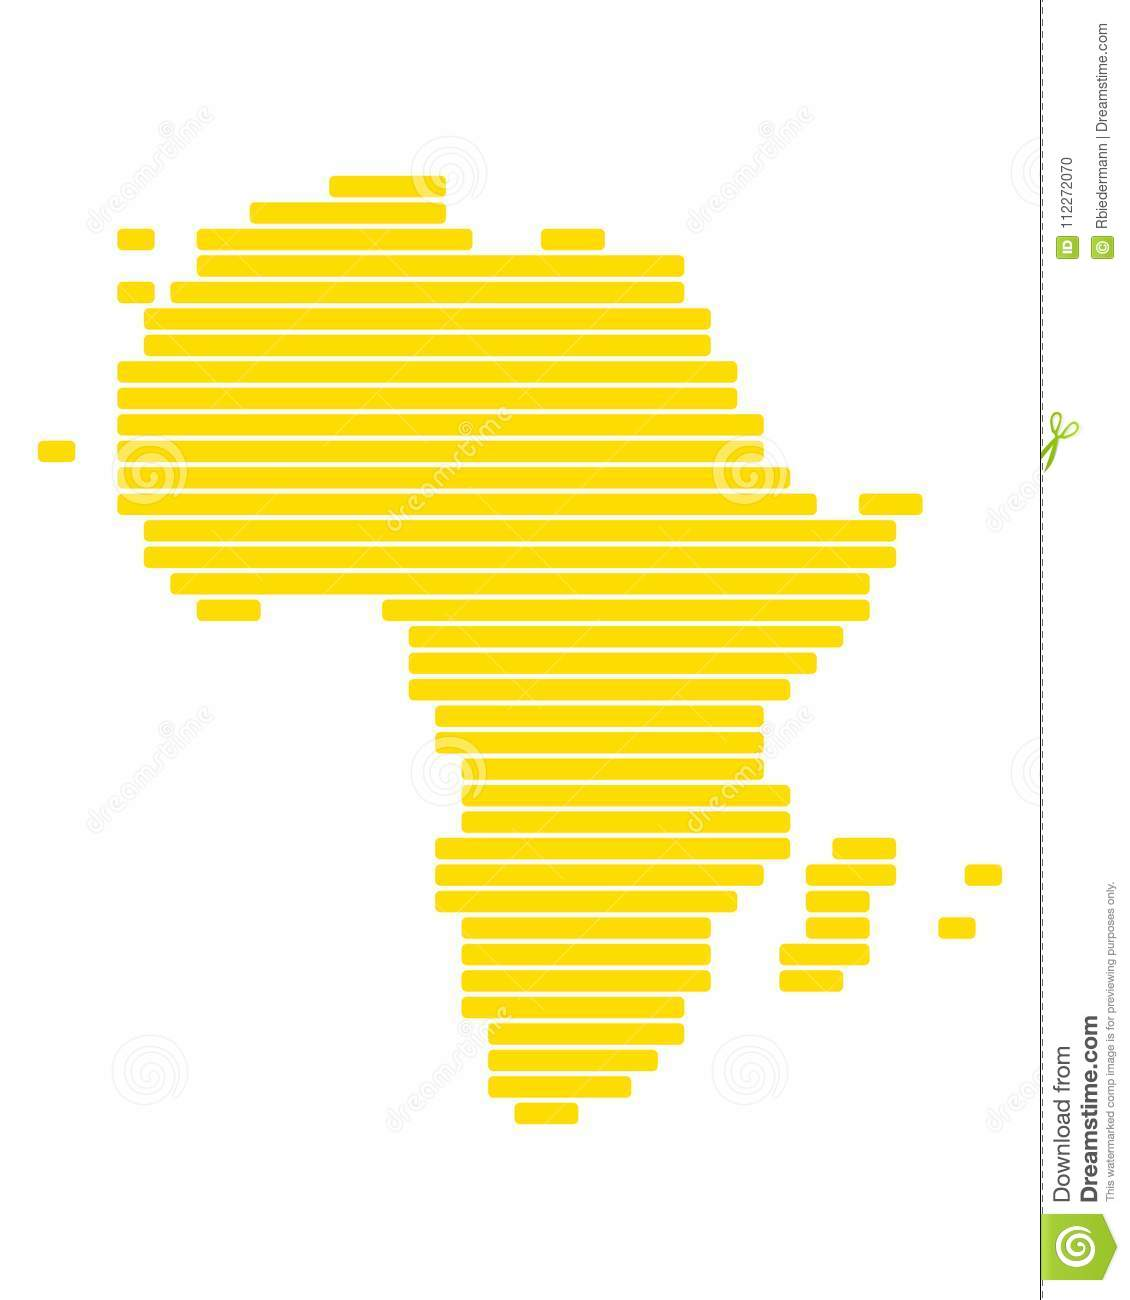 Accurate Map Of Africa.Map Of Africa Stock Vector Illustration Of Background 112272070